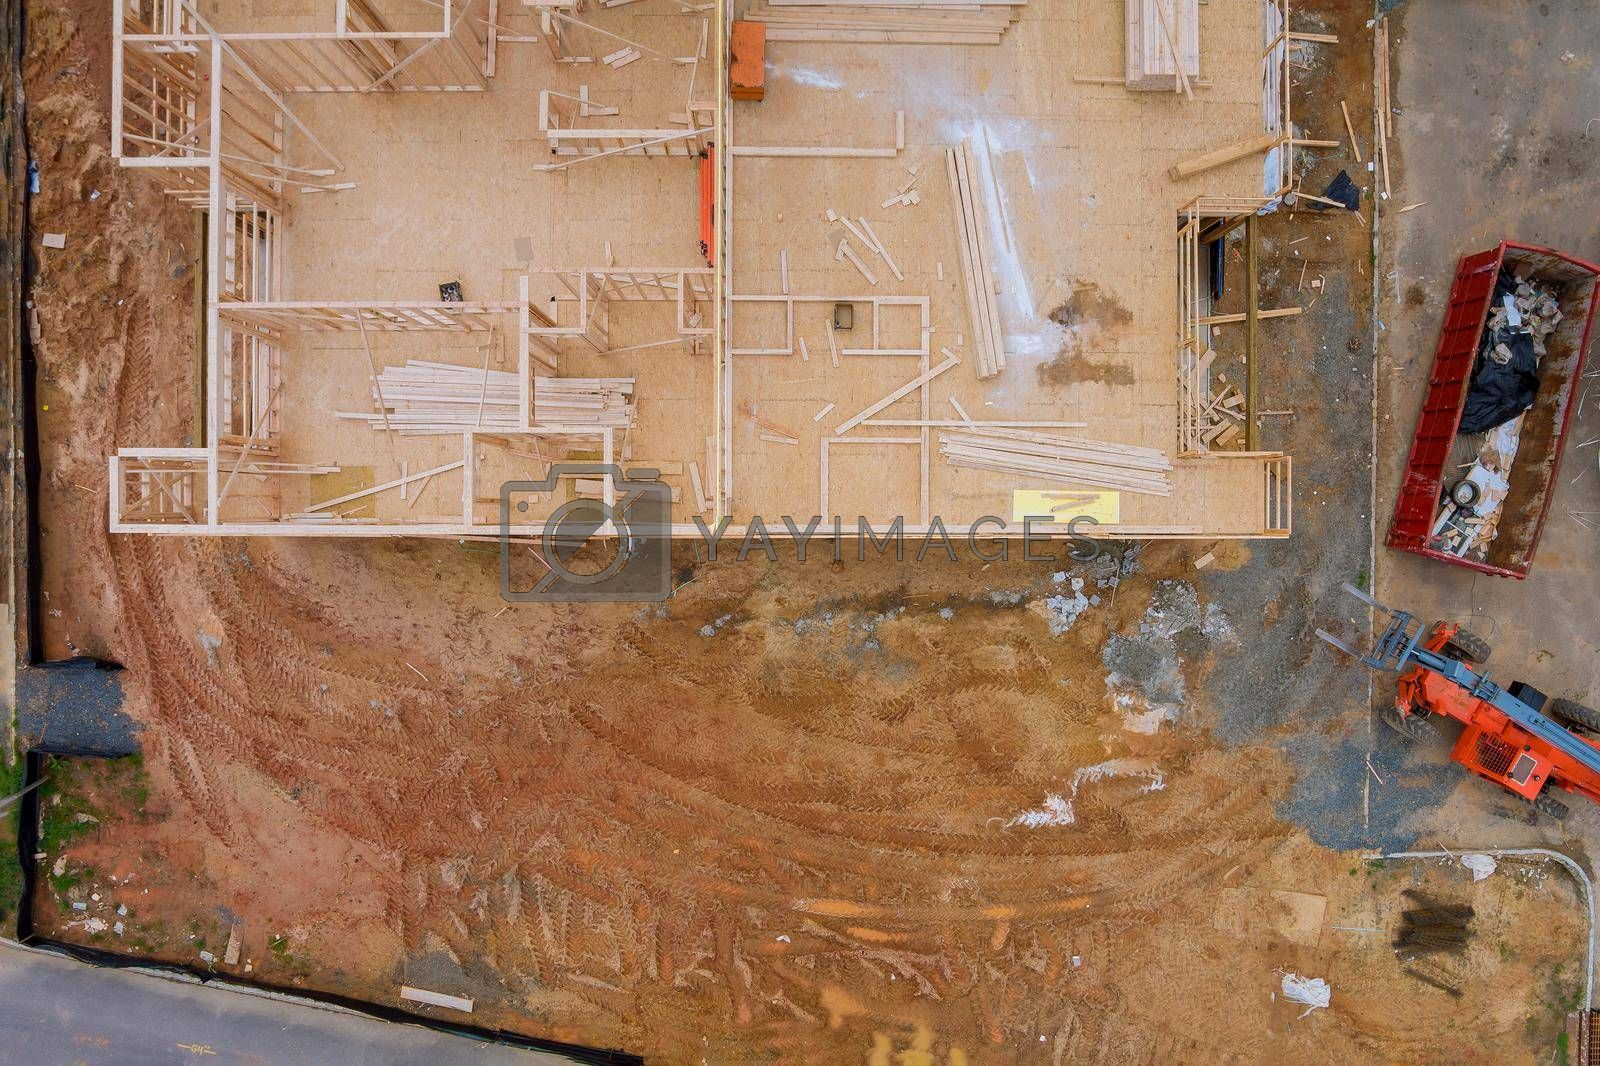 Aerial view of apartment framing of a new house under construction with forklift stacker wooden boards the trash dumpsters construction